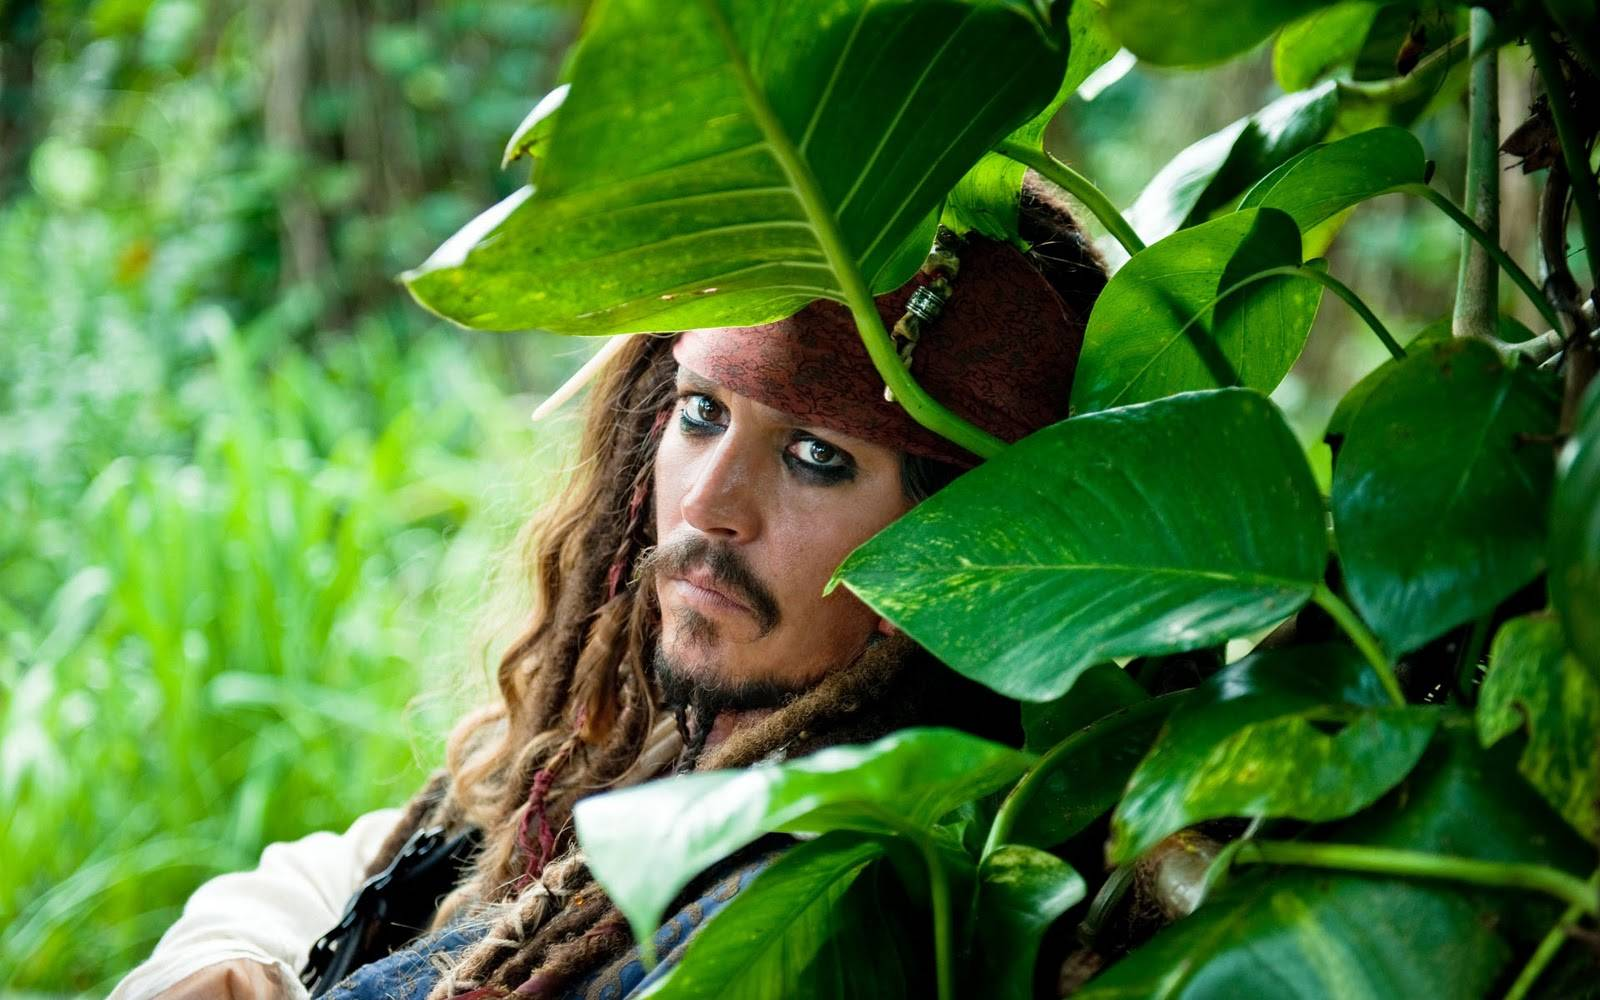 Captain Jack in the jungle - Captain Jack Sparrow Wallpaper